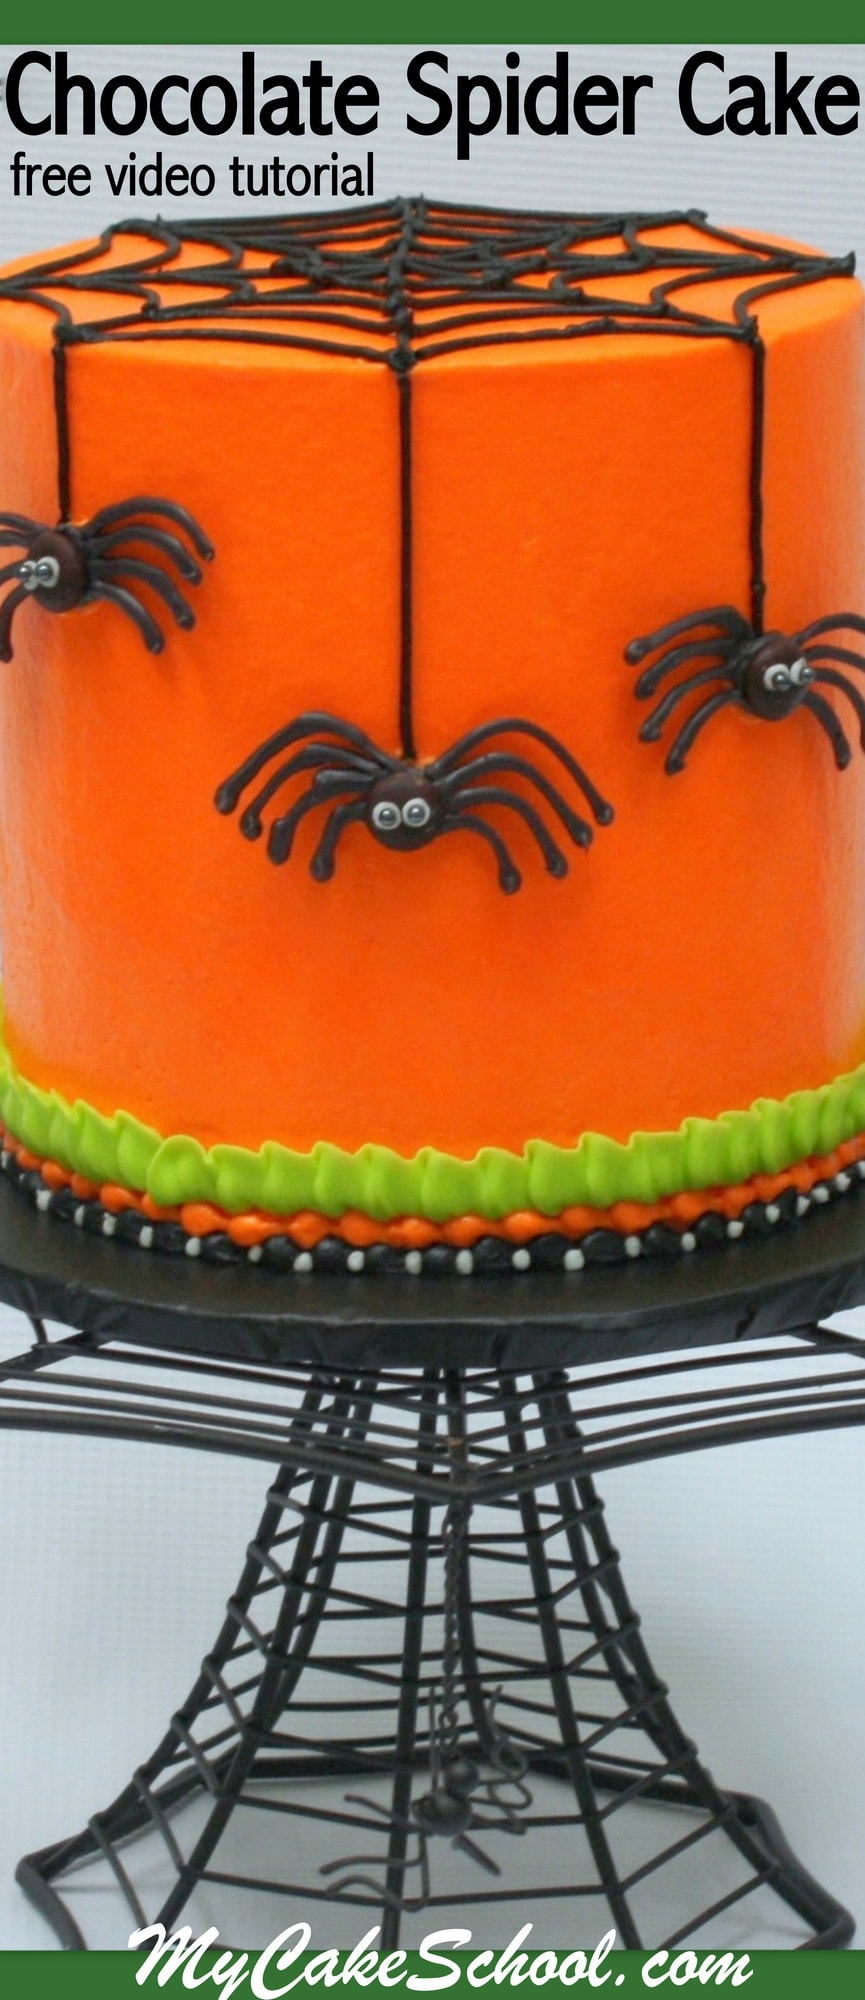 Free Halloween Cake Video Tutorial for a CUTE Chocolate Spider Cake! MyCakeSchool.com Online Cake Video Tutorials, Recipes, and More!